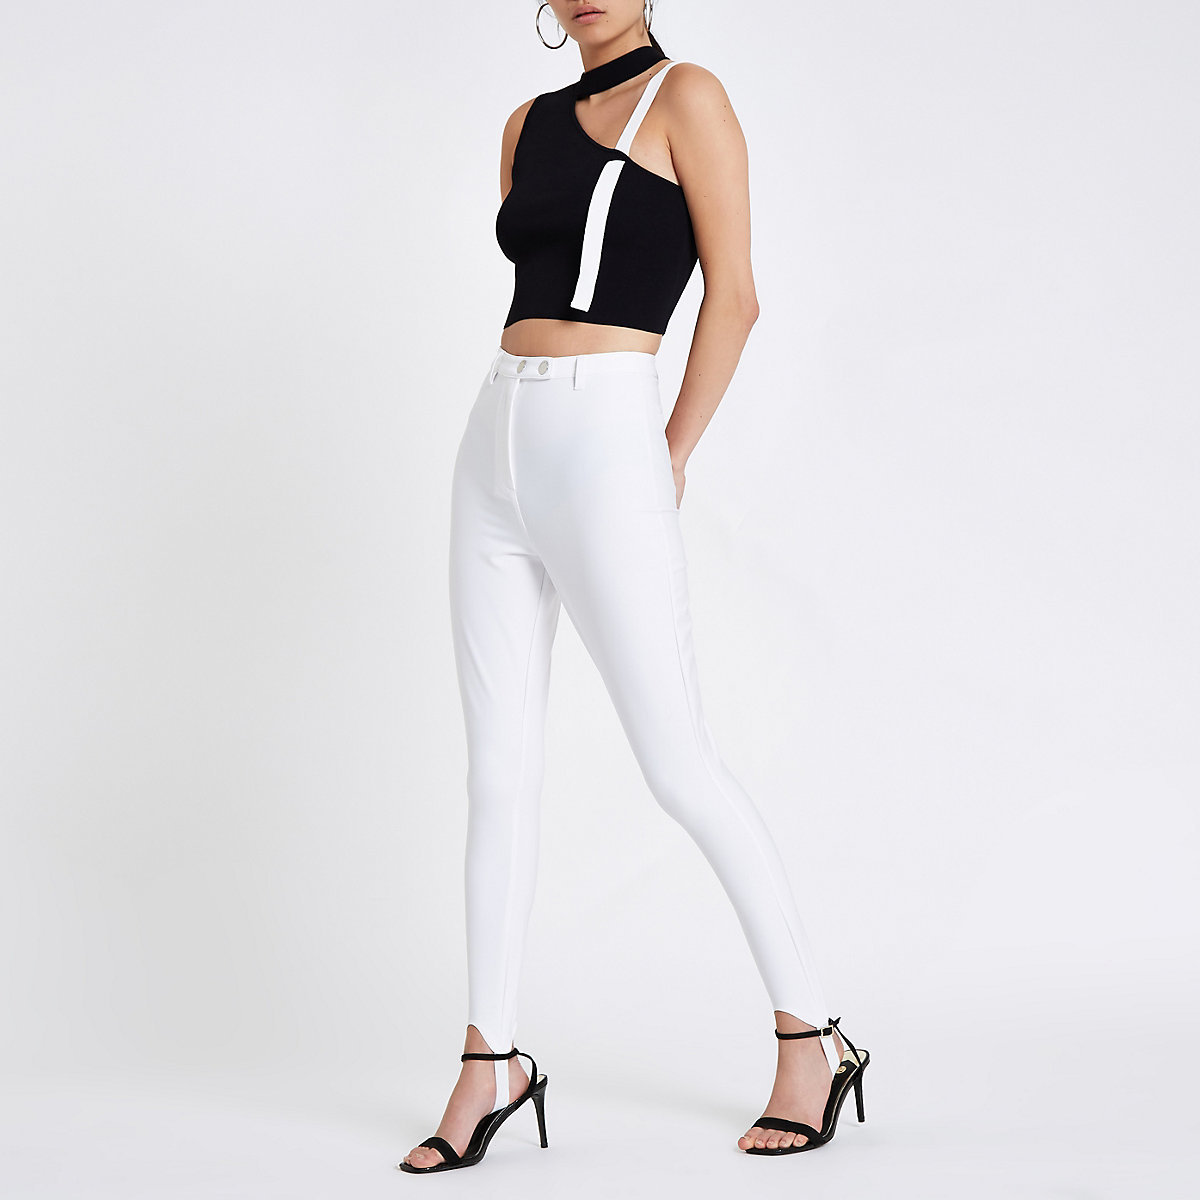 White high waisted stirrup leggings